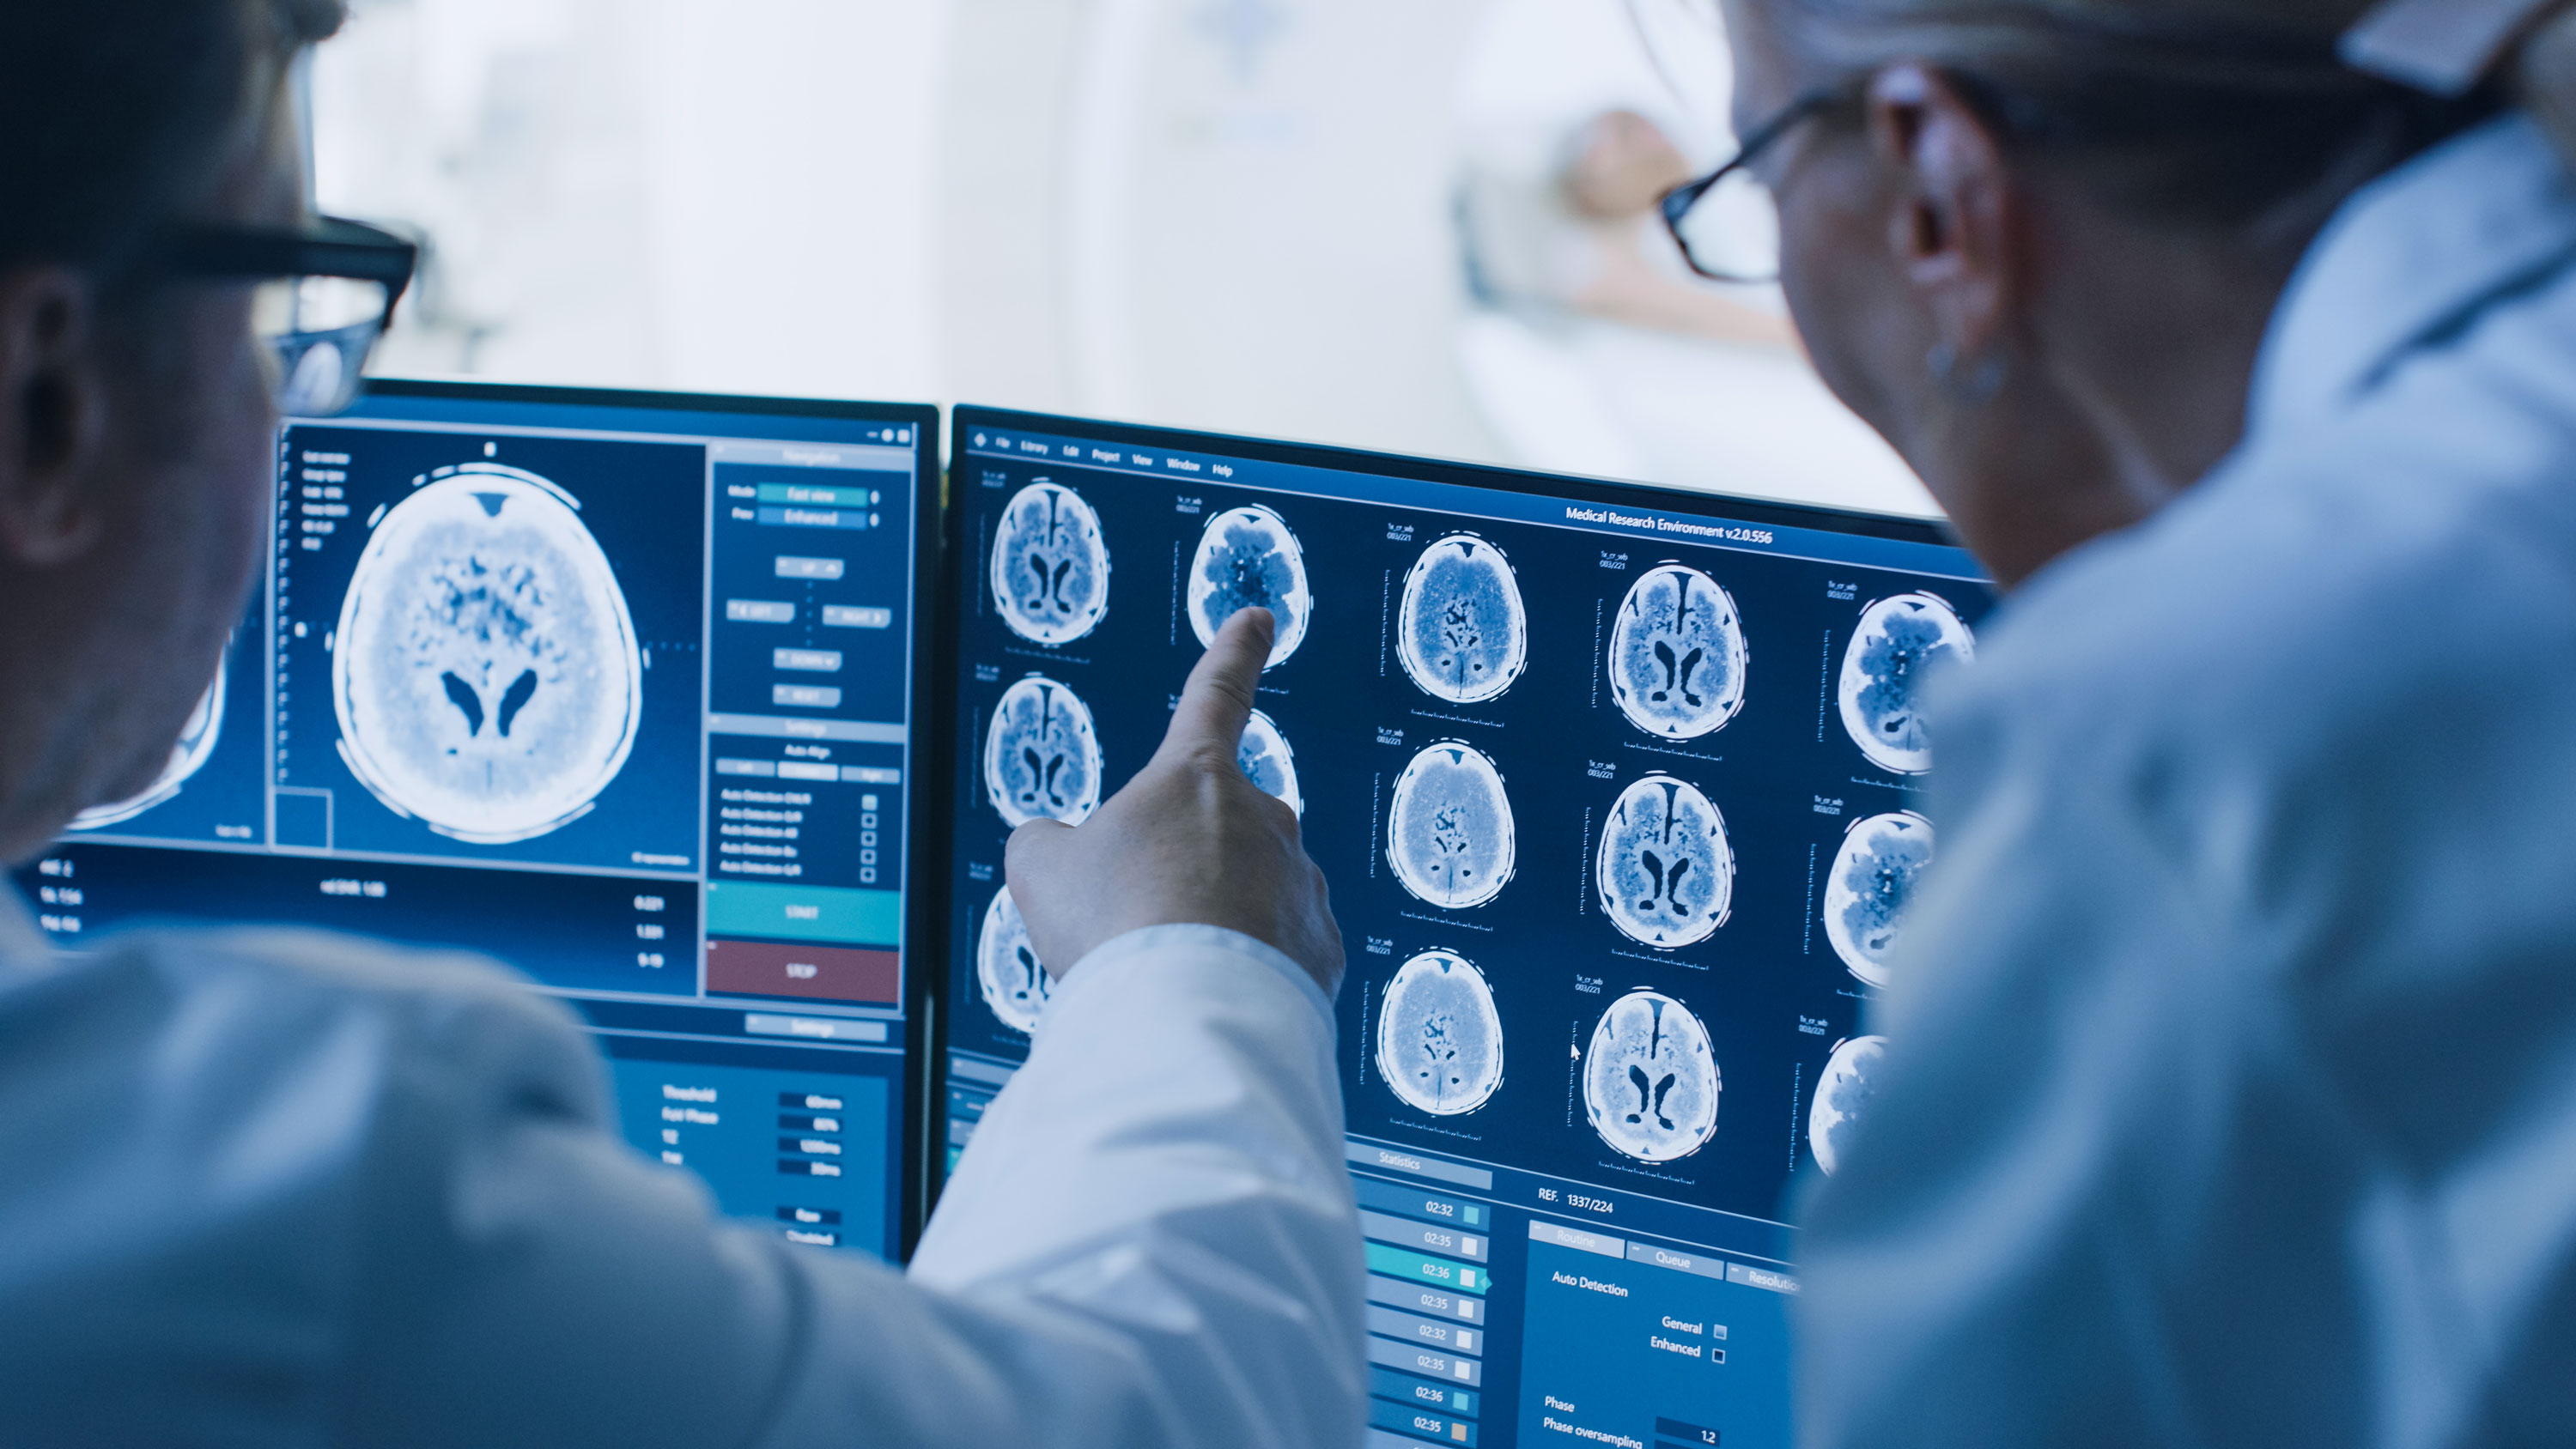 U of A researchers discovered a new method to identify the severity of ALS in patients